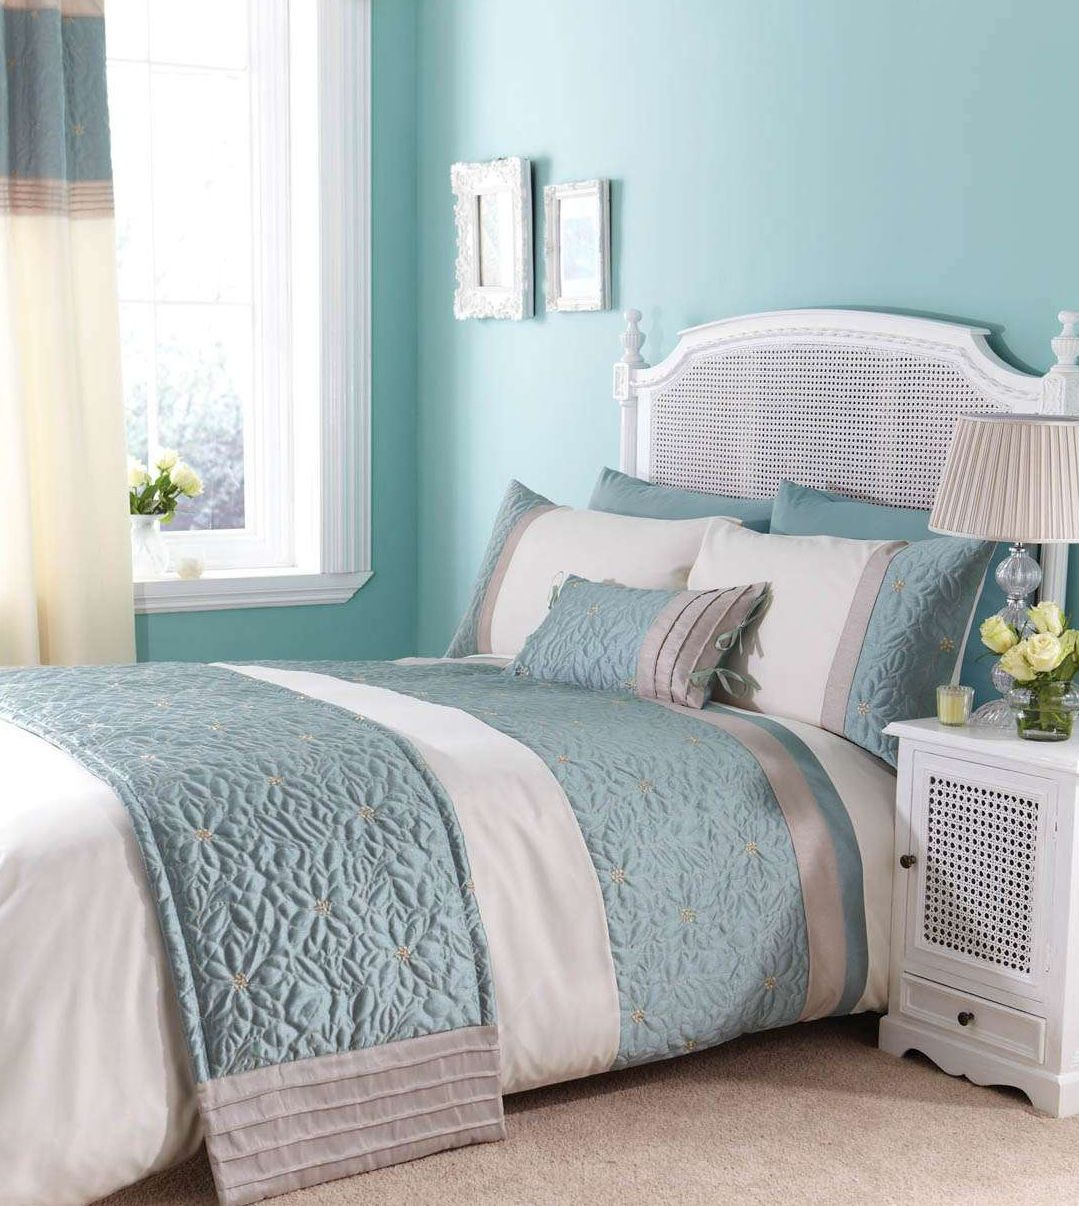 Blue and brown bedroom decor - Fresh Duck Egg Blue Make This Bedding Set A Beautiful Addition To Any Bedroom Http